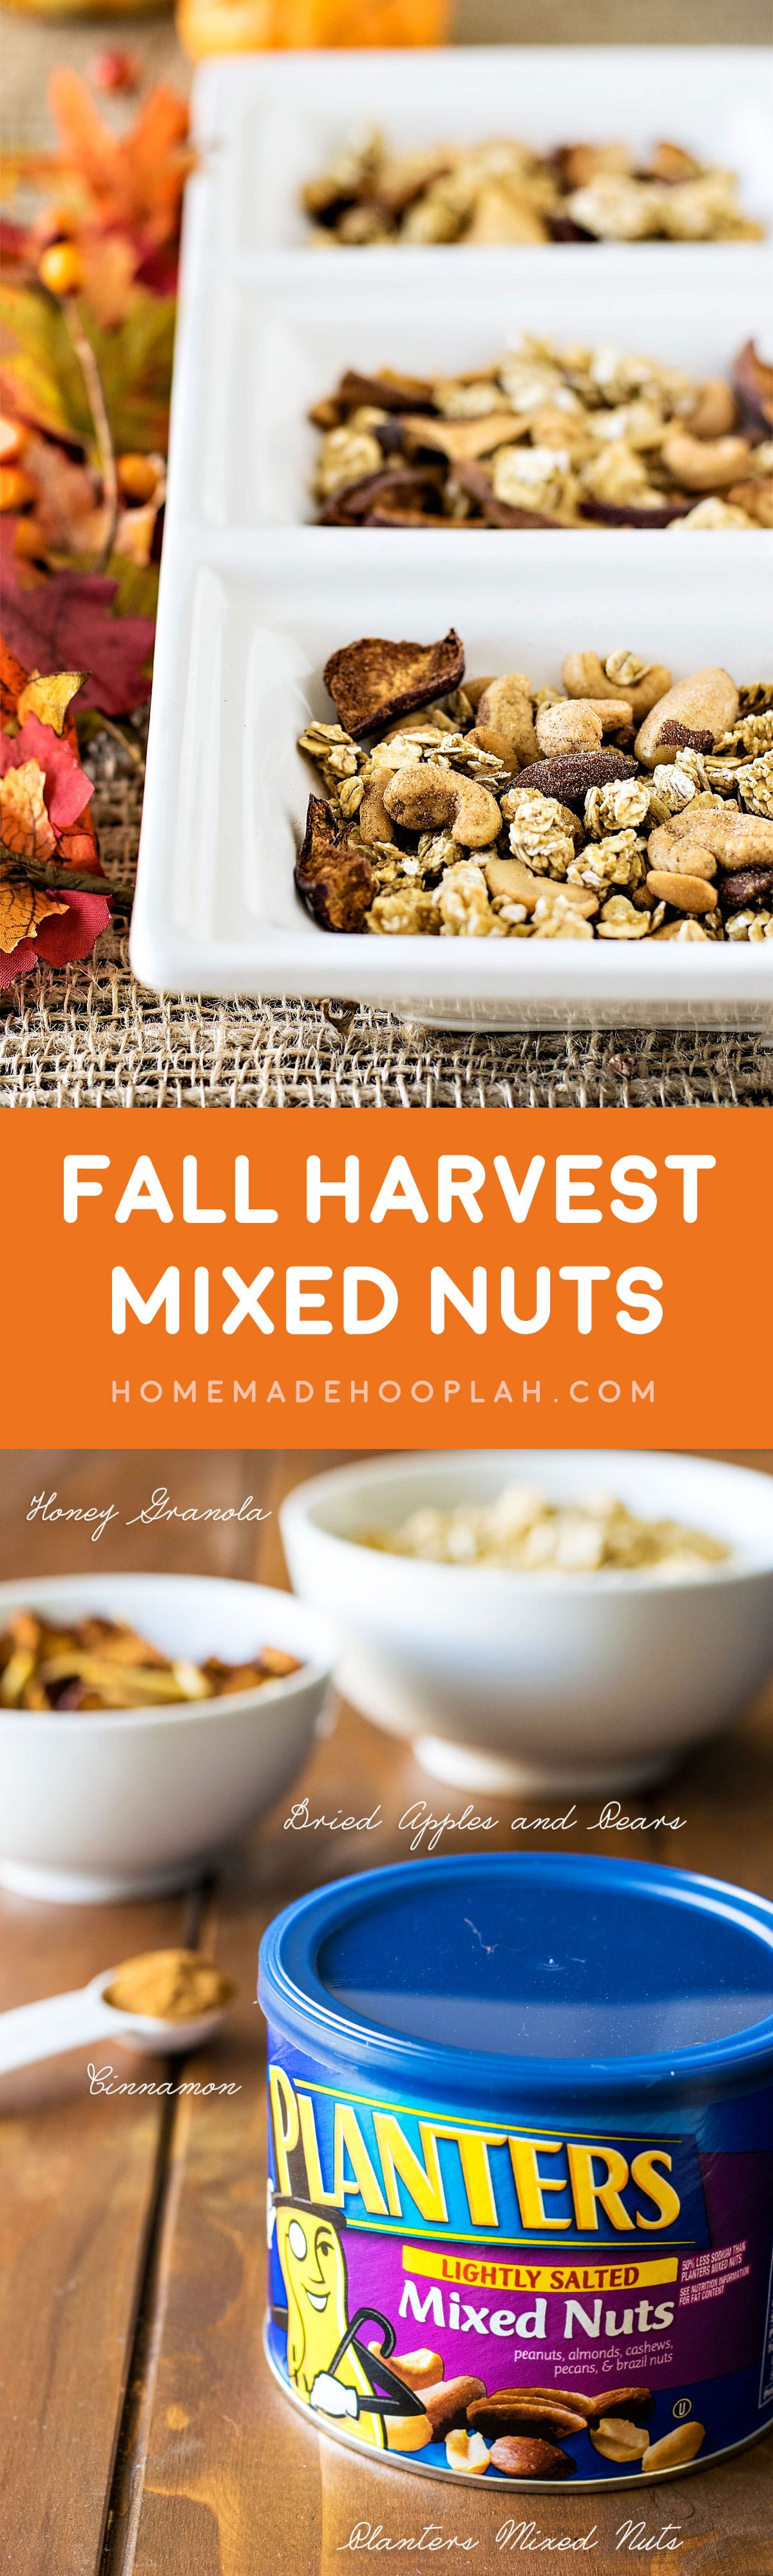 Fall Harvest Mixed Nuts! A (perfectly simple!) holiday snack for gifting or entertaining guests: dried fall fruits, granola, and Planters Mixed Nuts. #PlantersHoliday #CleverGirls  | HomemadeHooplah.com